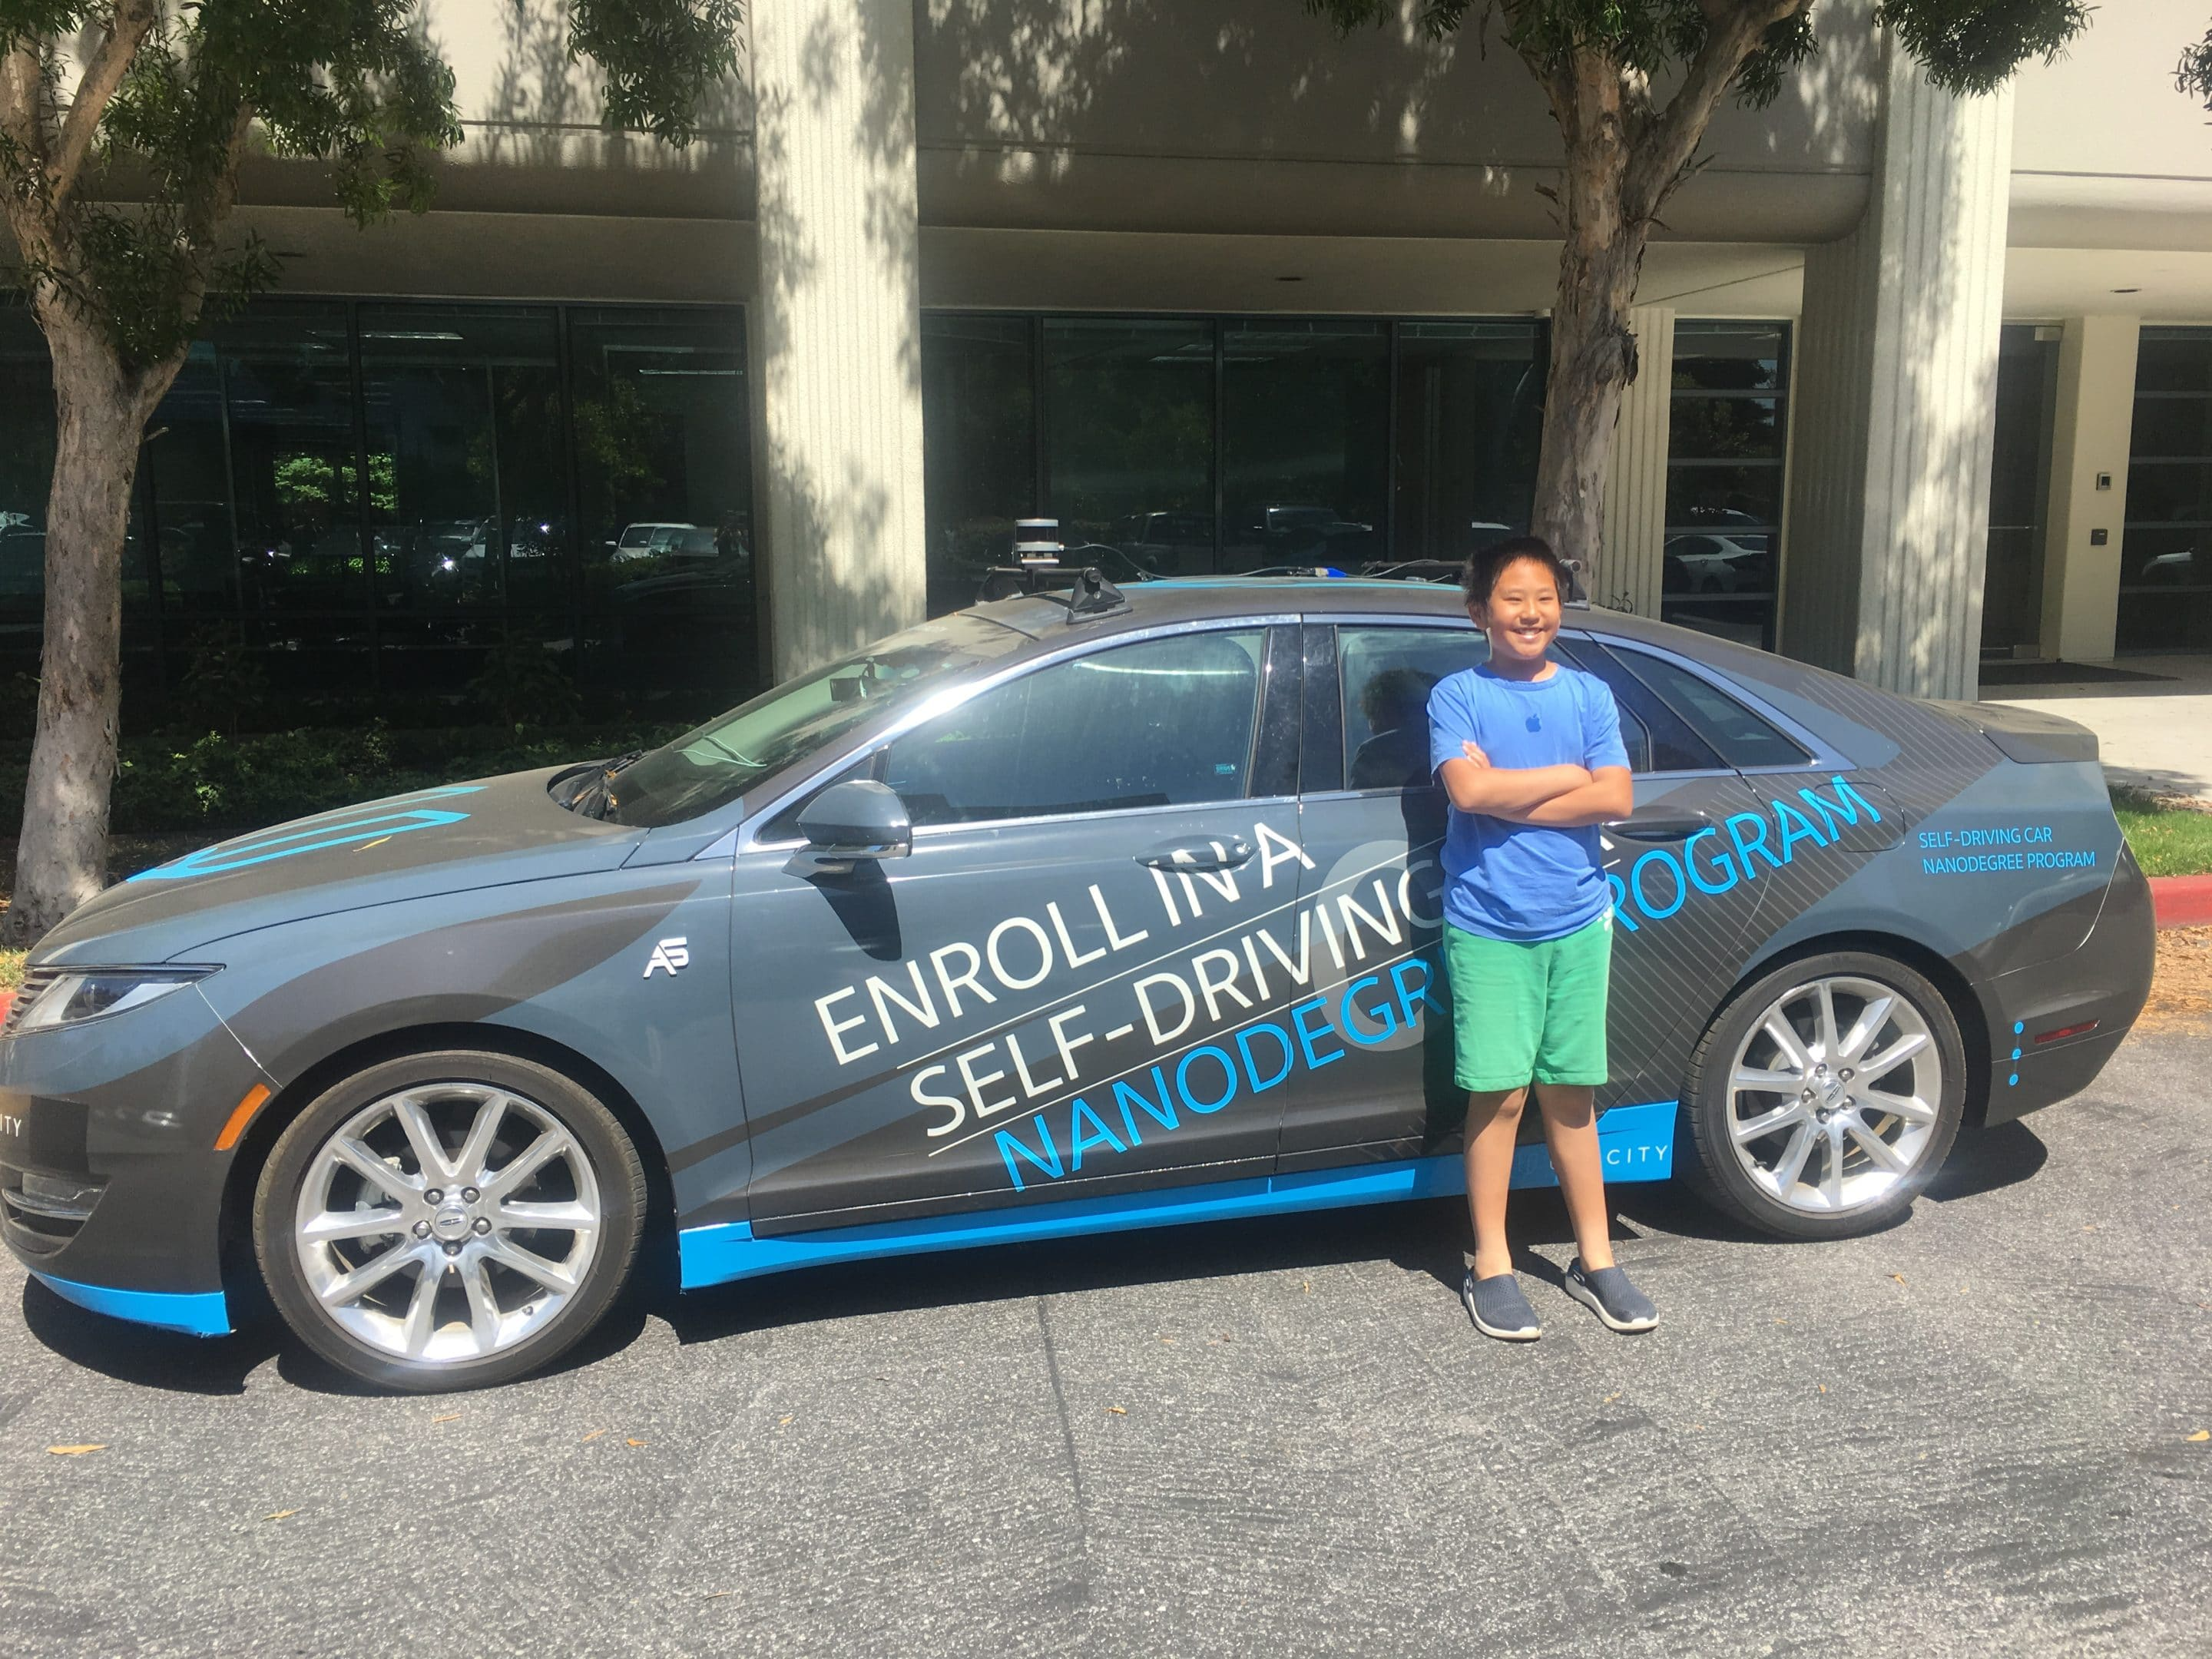 11-year-old Aaron Ma with Carla, Udacity's Self Driving Car